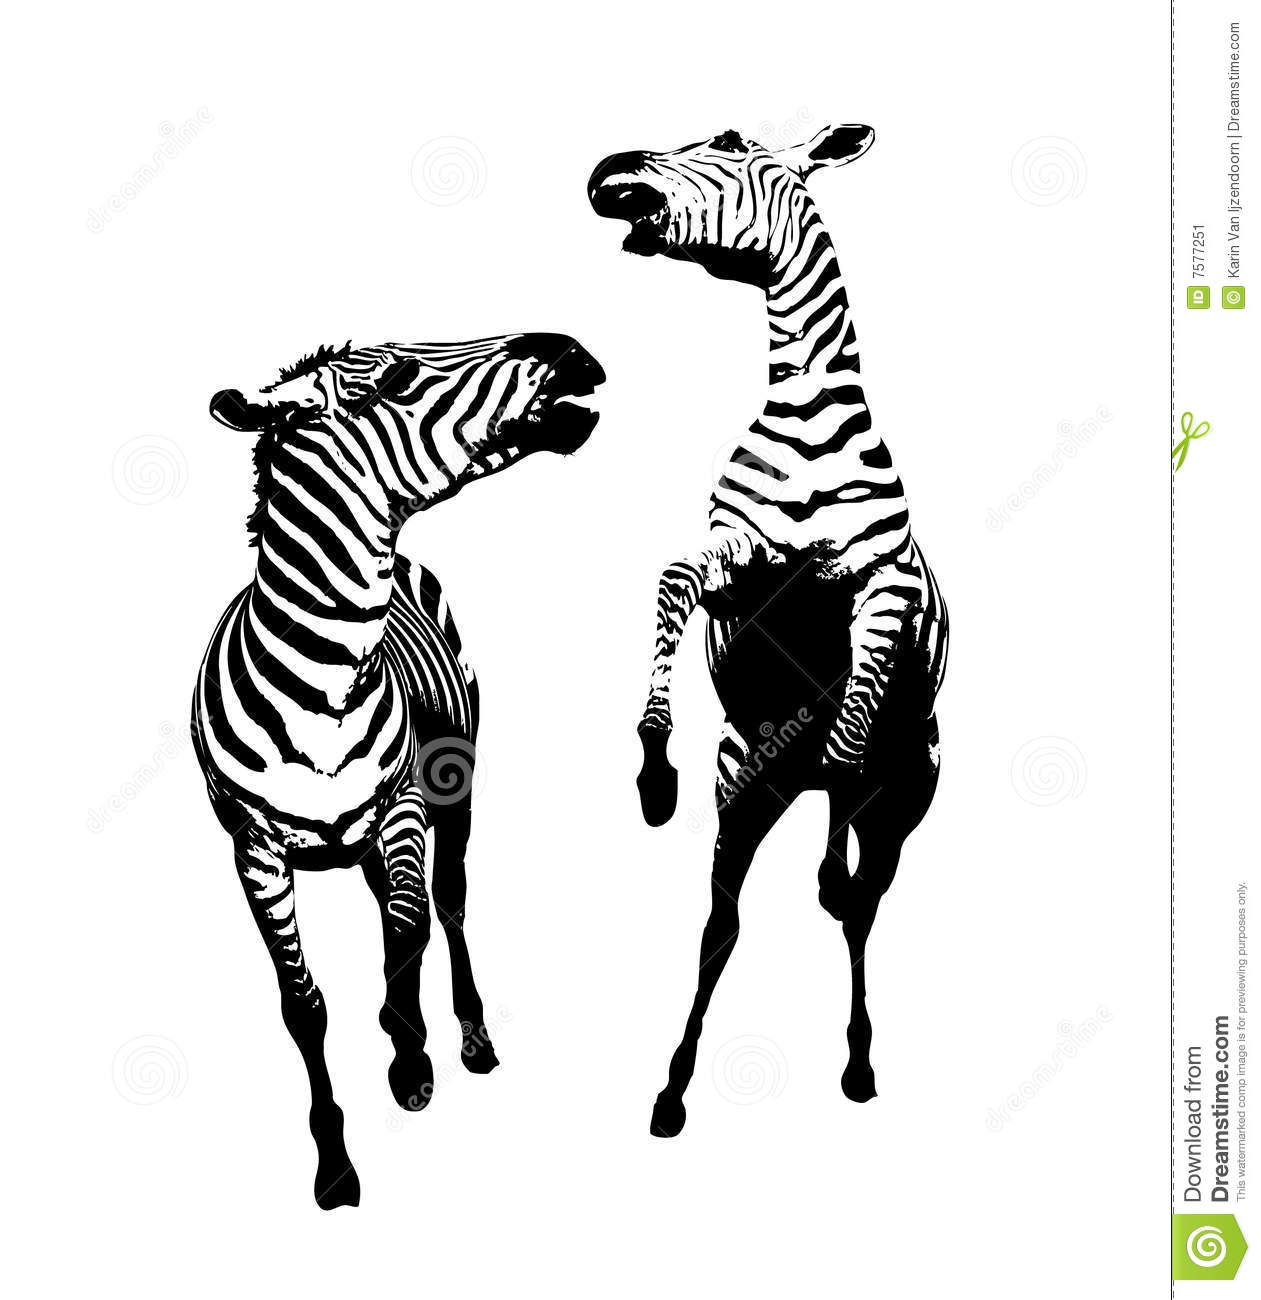 Fighting Zebra Illustration Stock Image